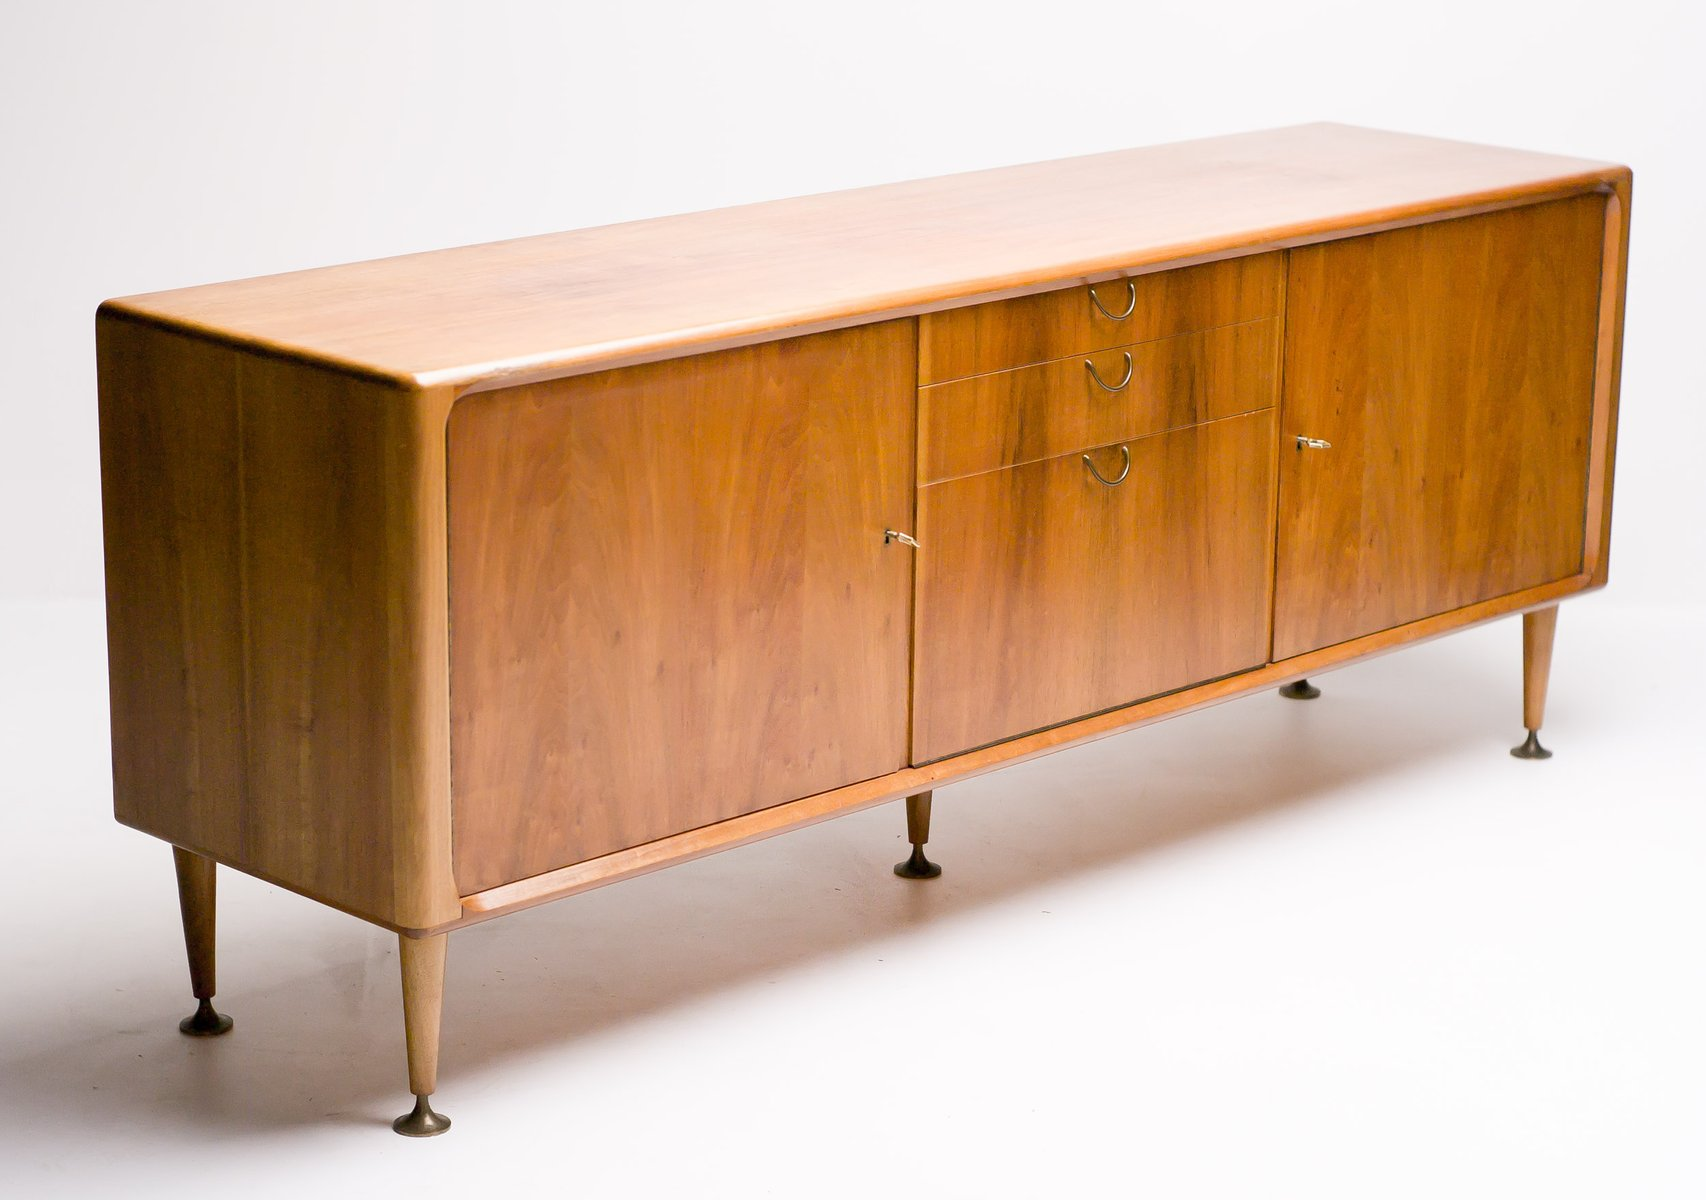 MidCentury Dutch Modern Walnut Sideboard by A A Patijn for